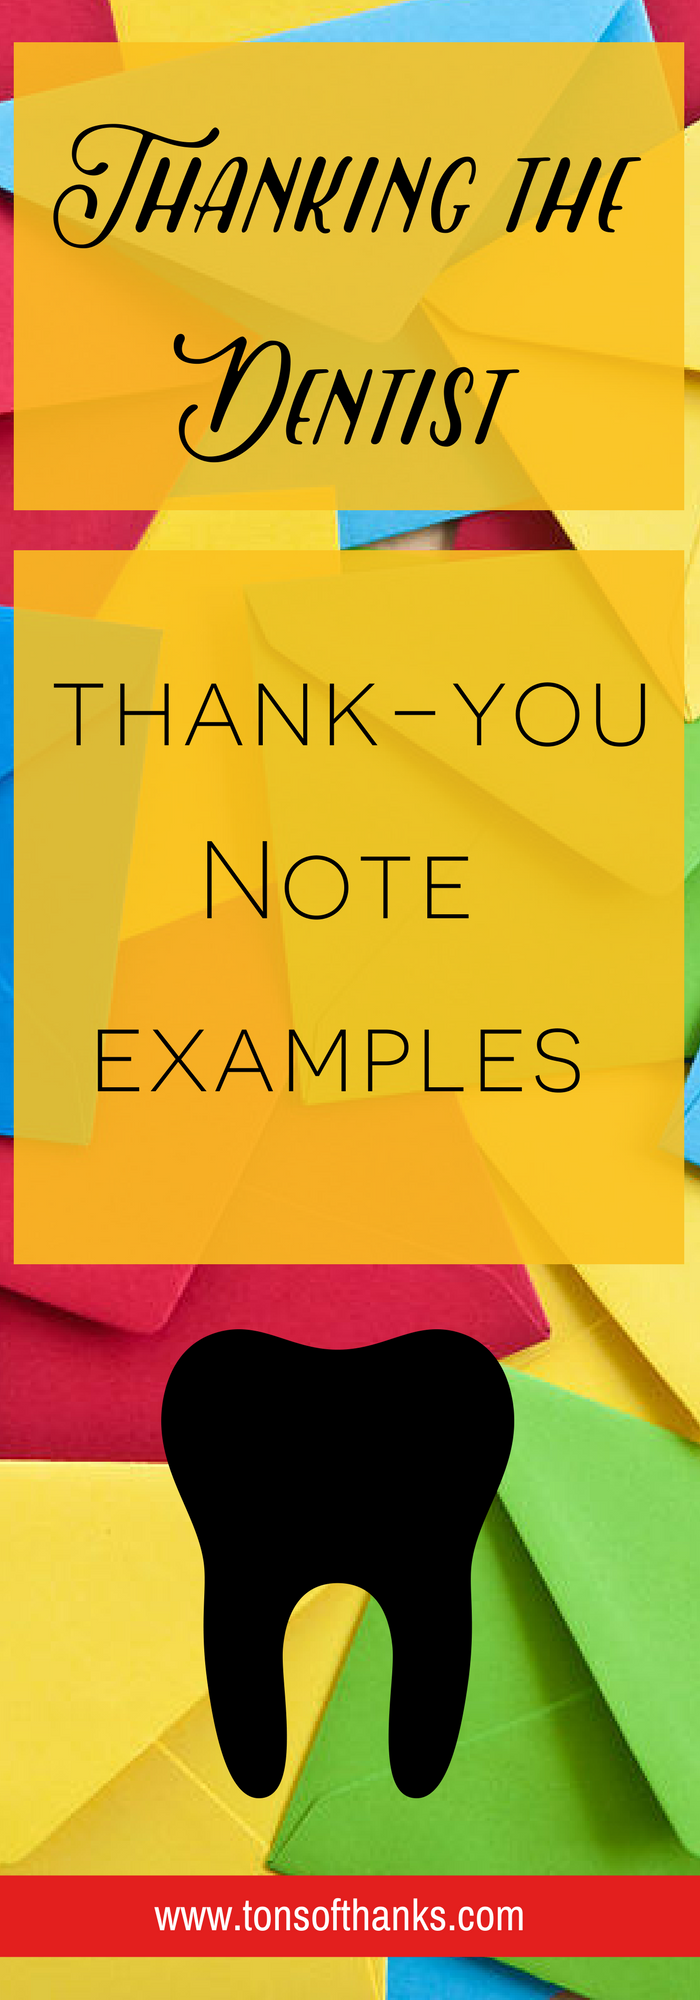 Thank You Note To Dentist Examples Thank You Notes Wedding Thankyou Notes Thank You Note Wording